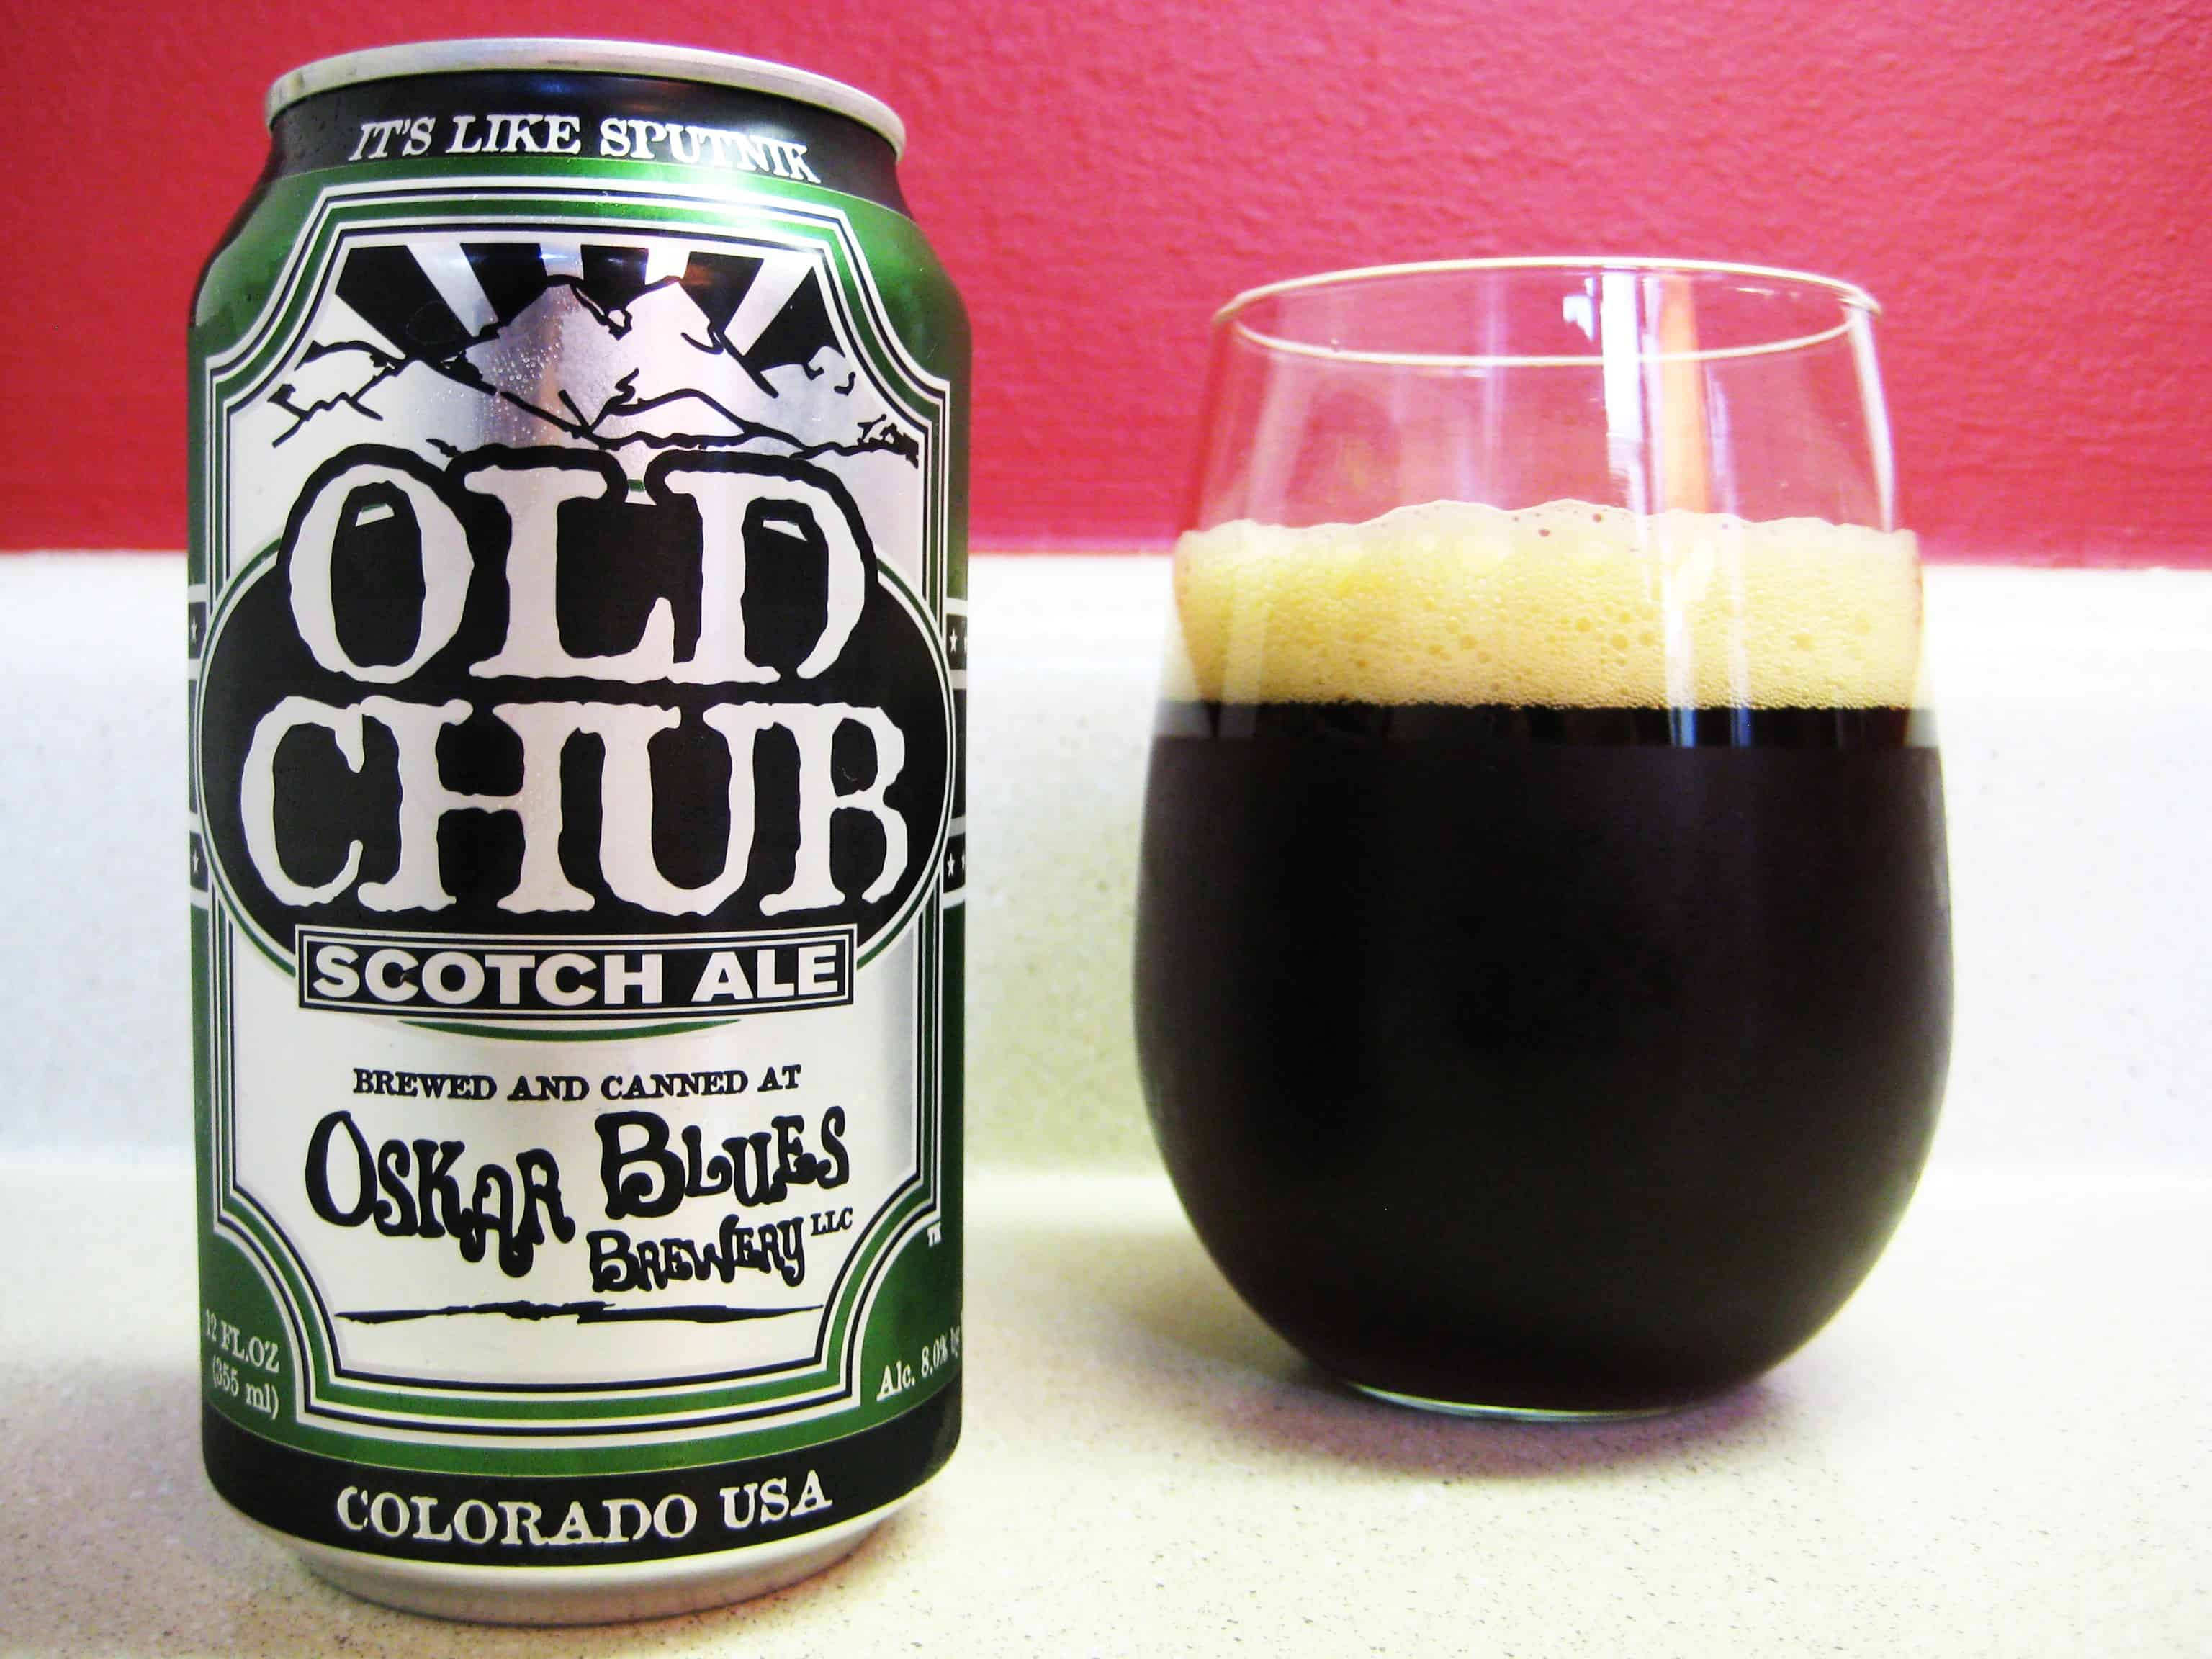 Oskar Blues Old Chub – shower beer